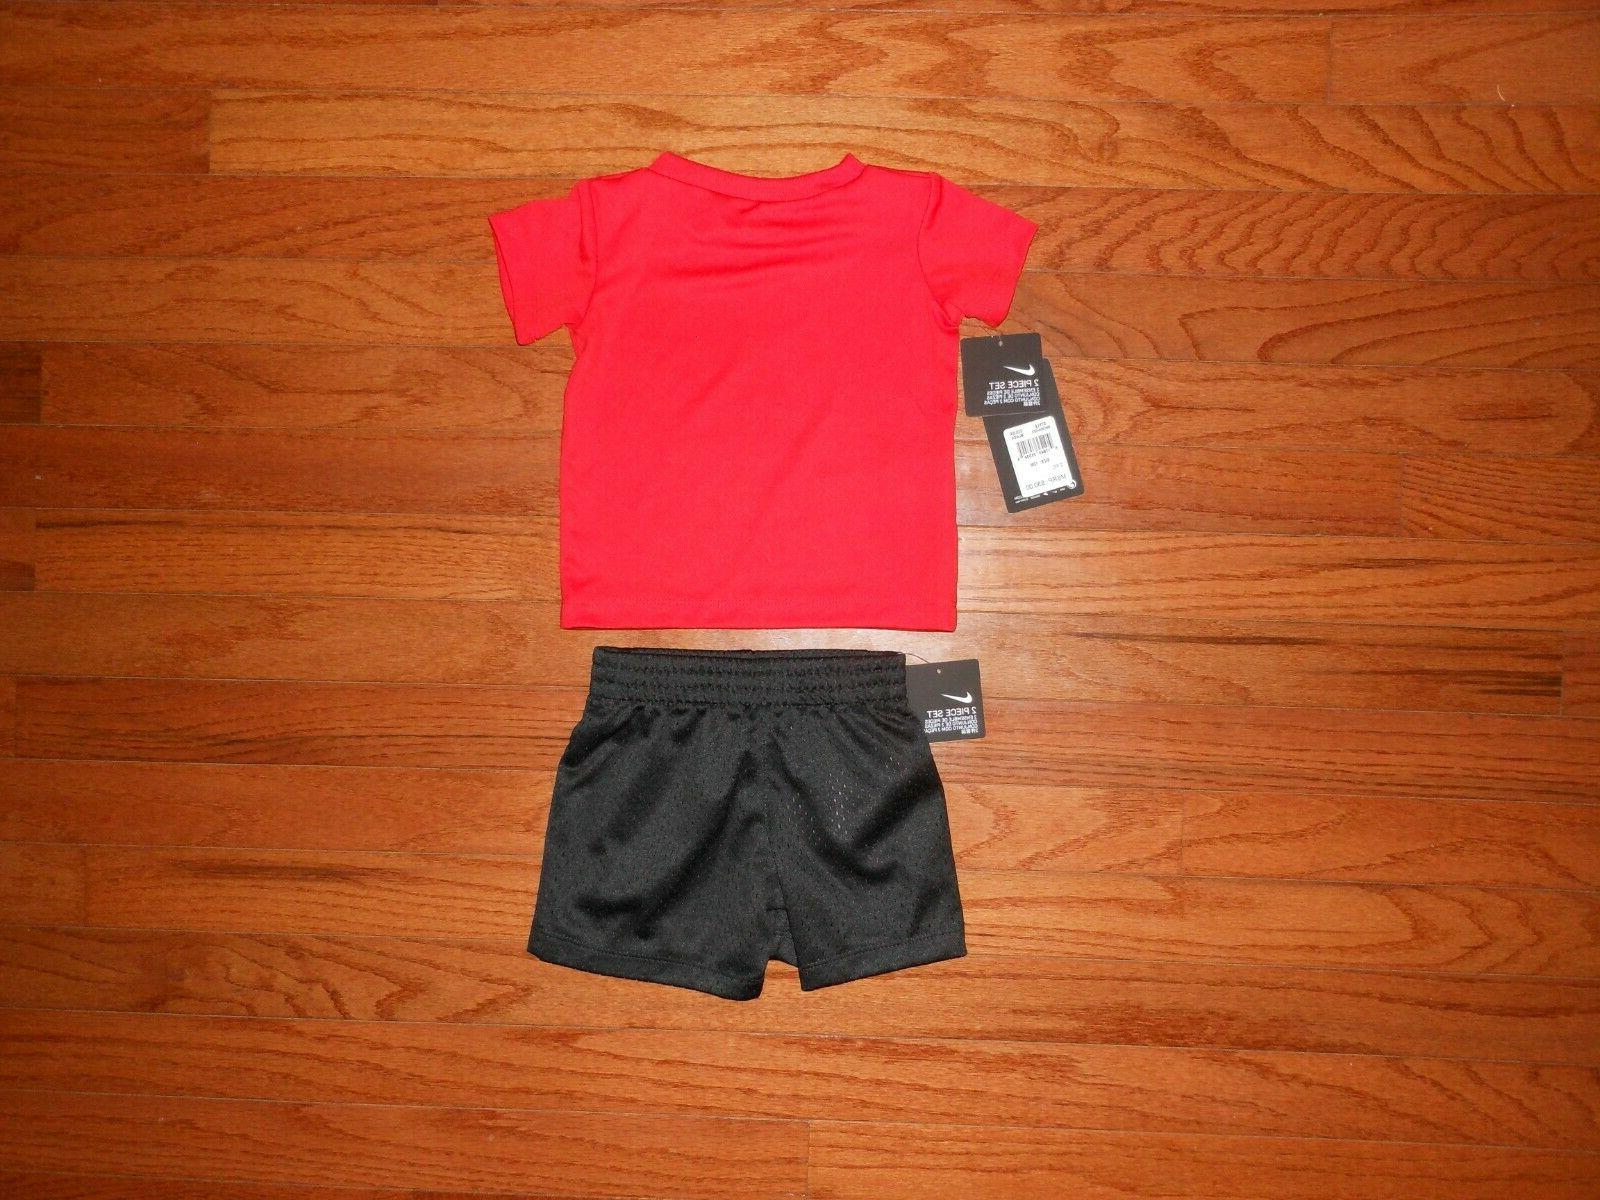 NWT Nike Baby 2pc r/b short outfit size 12M